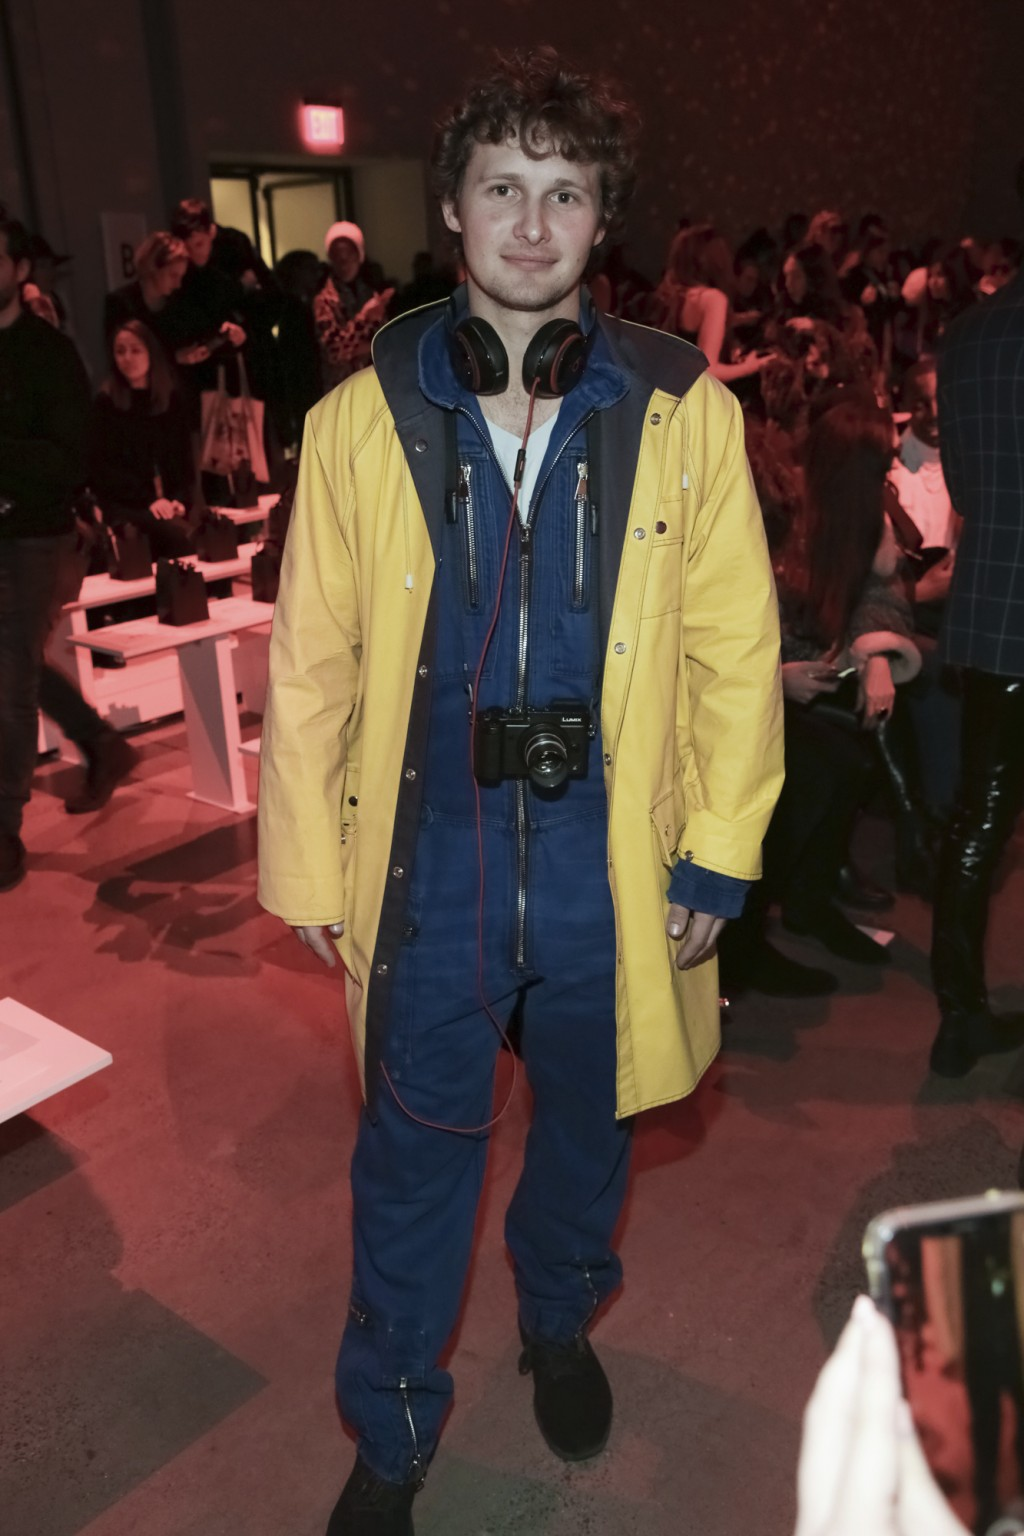 Warren Elgort attends The Blonds Runway Show held at Spring Studios during New York Fashion Week on Tuesday, Feb. 12, 2019 in New York. (Photo by Bren